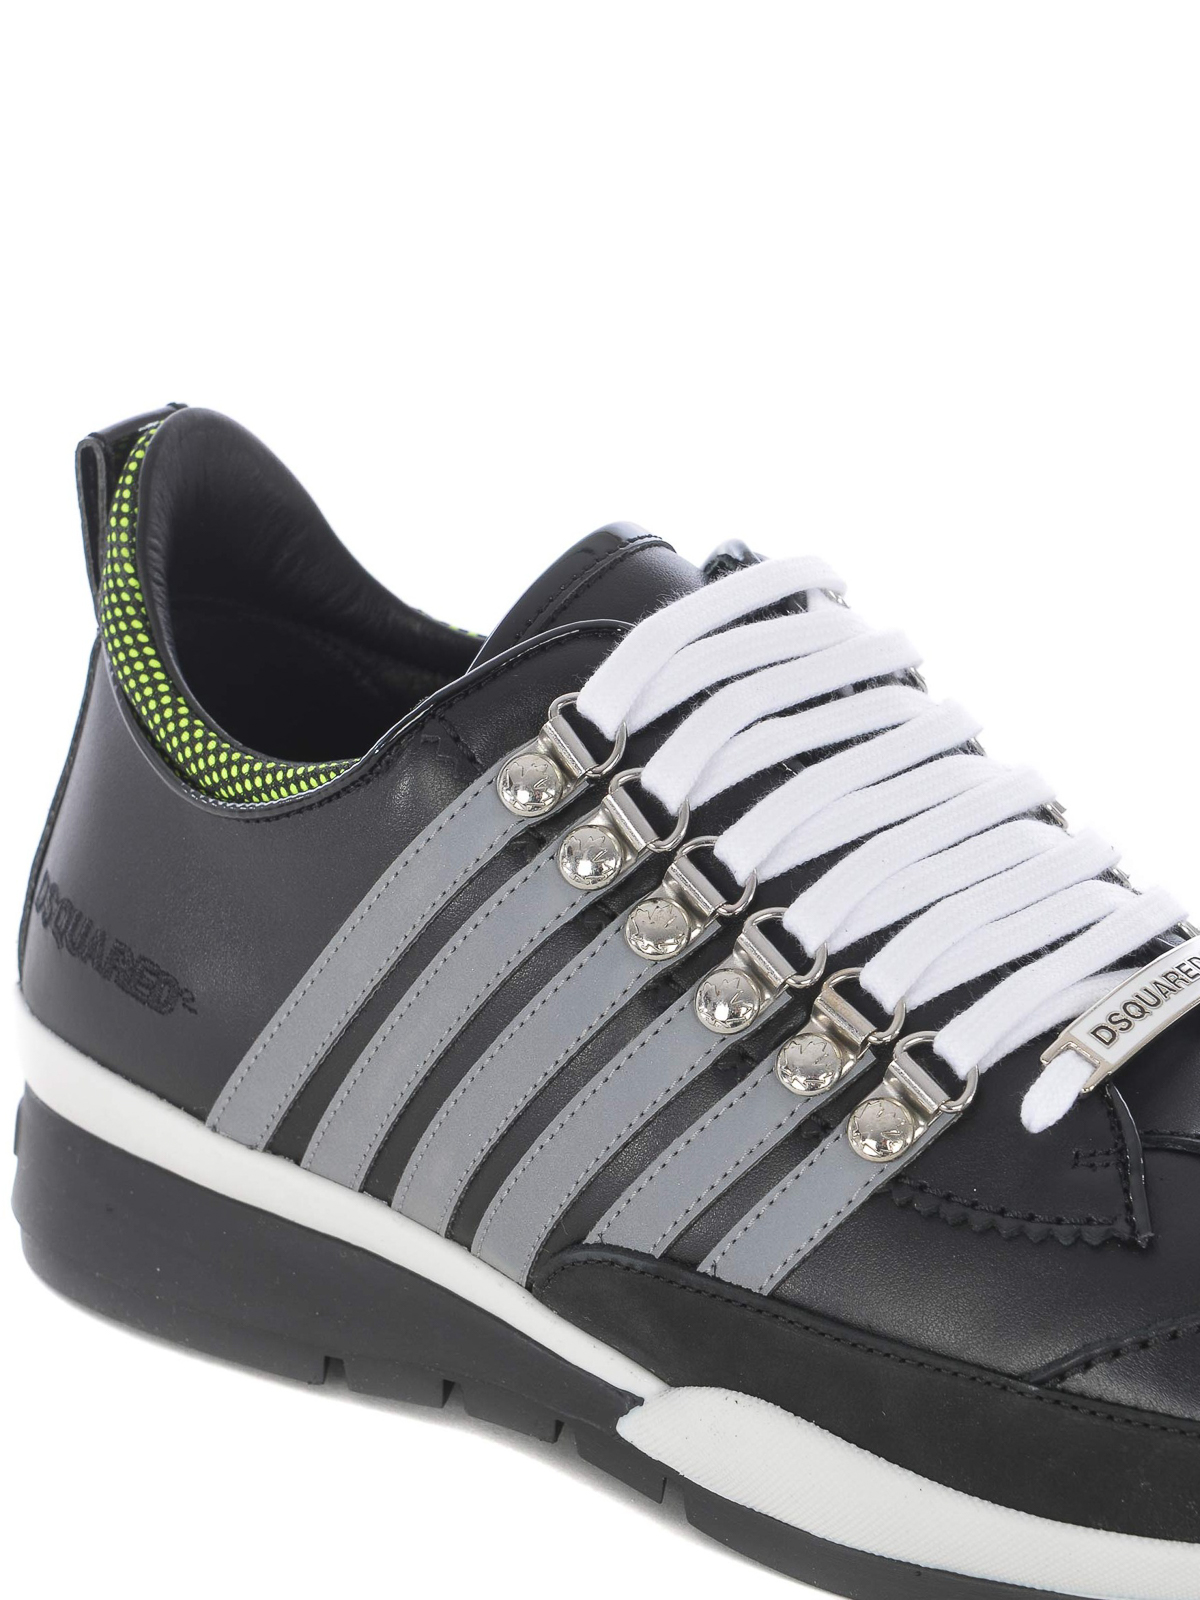 251 sneakers with reflective stripes